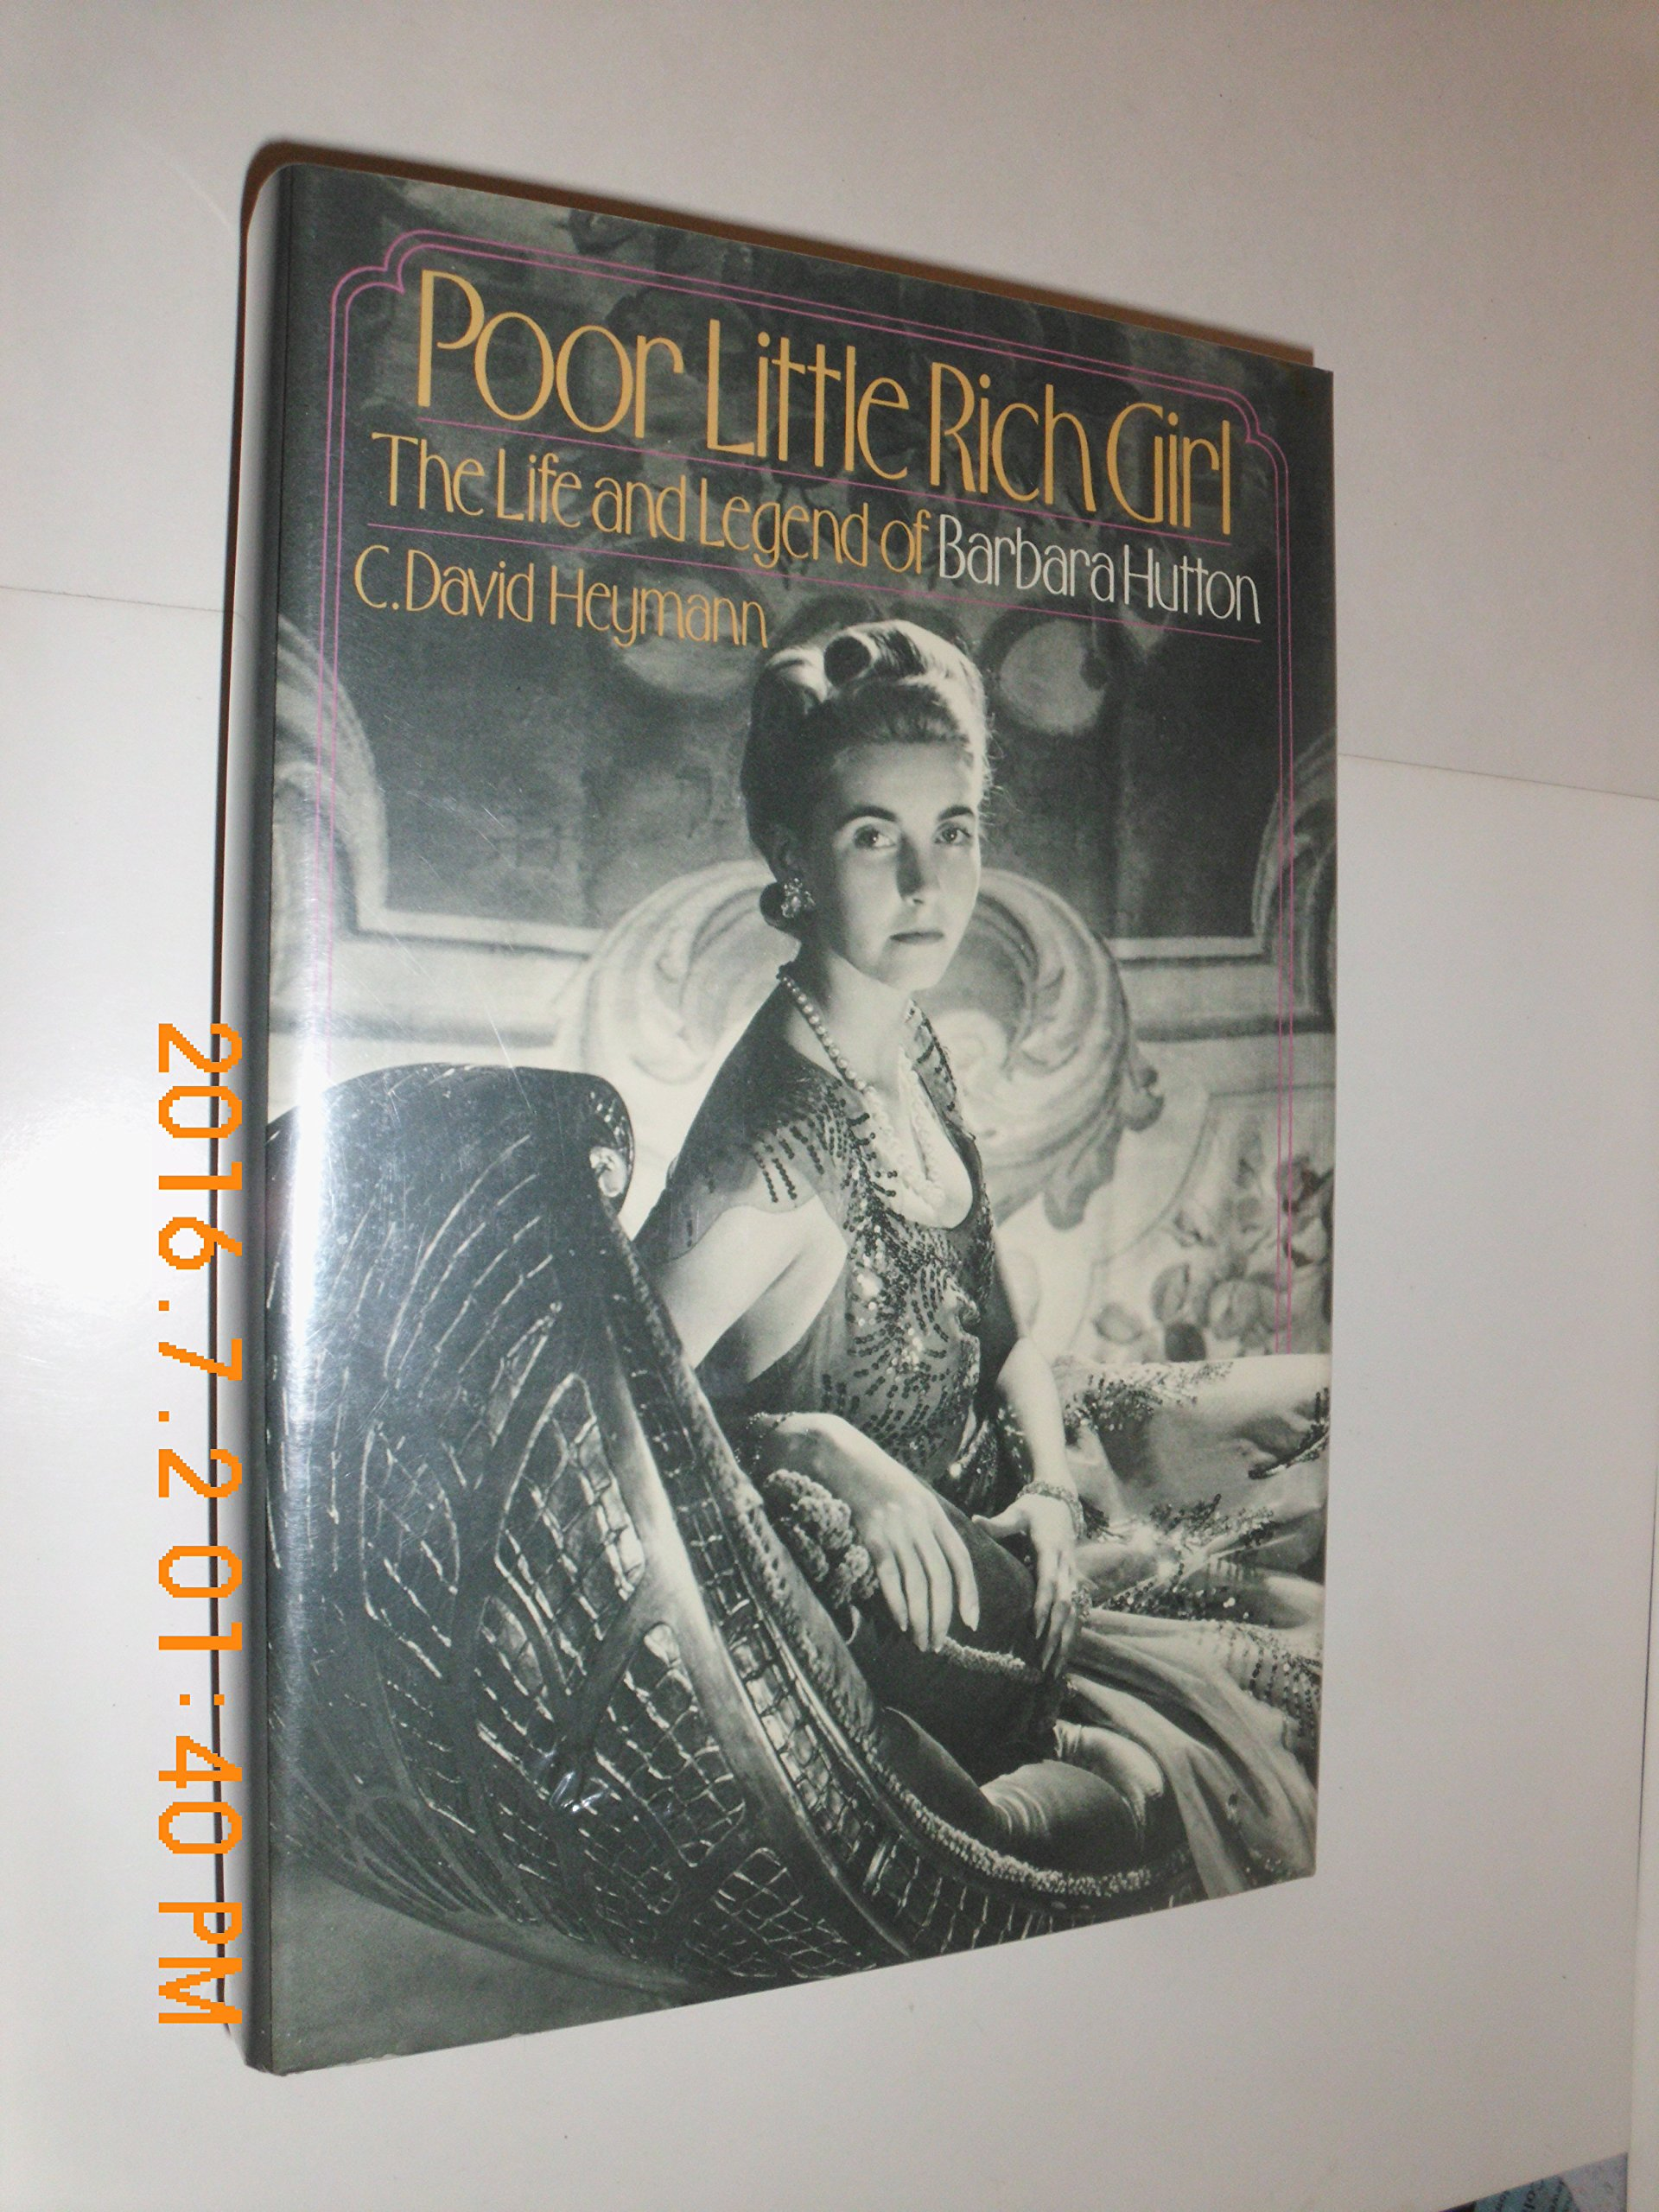 Amazon distribution warehouse management books poor little rich girl the life and legend of barbara hutton fandeluxe Choice Image